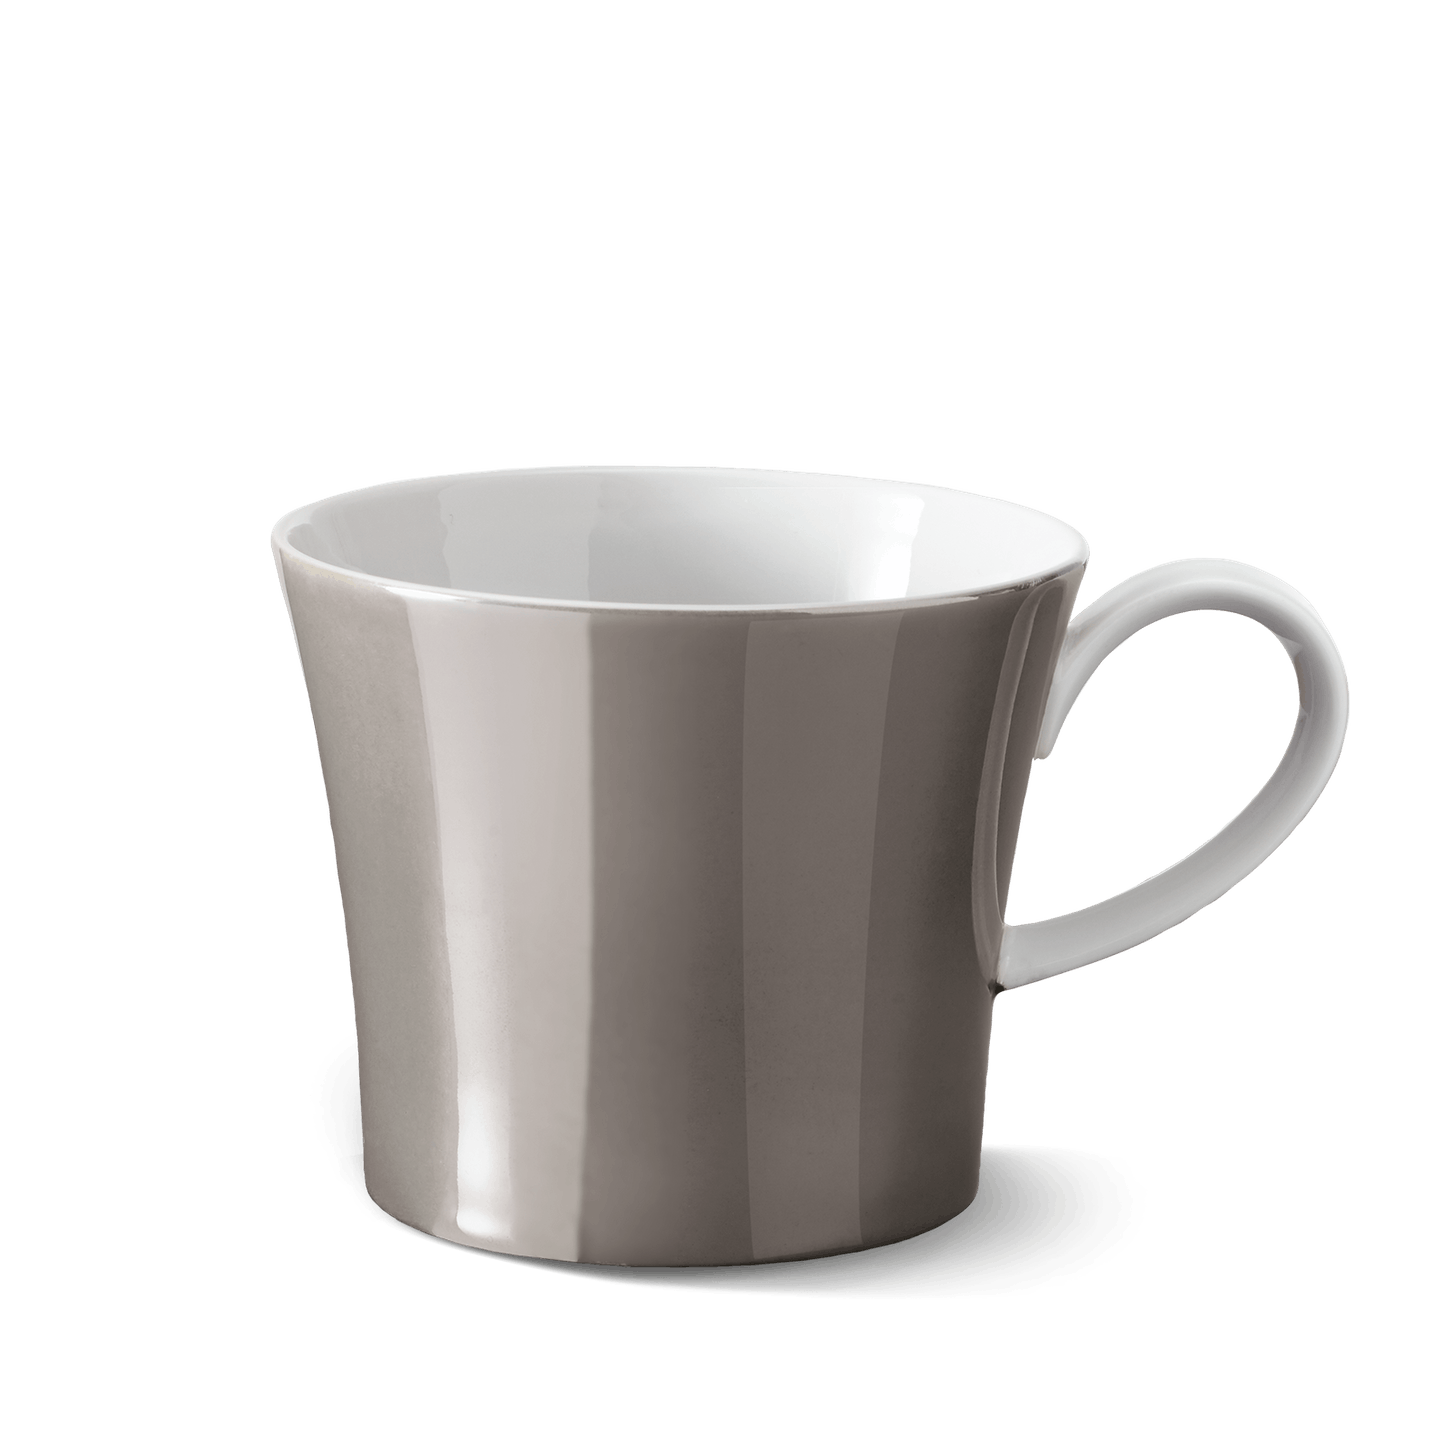 BERLIN coffee mug MITTE, Luster color ANTHRACITE